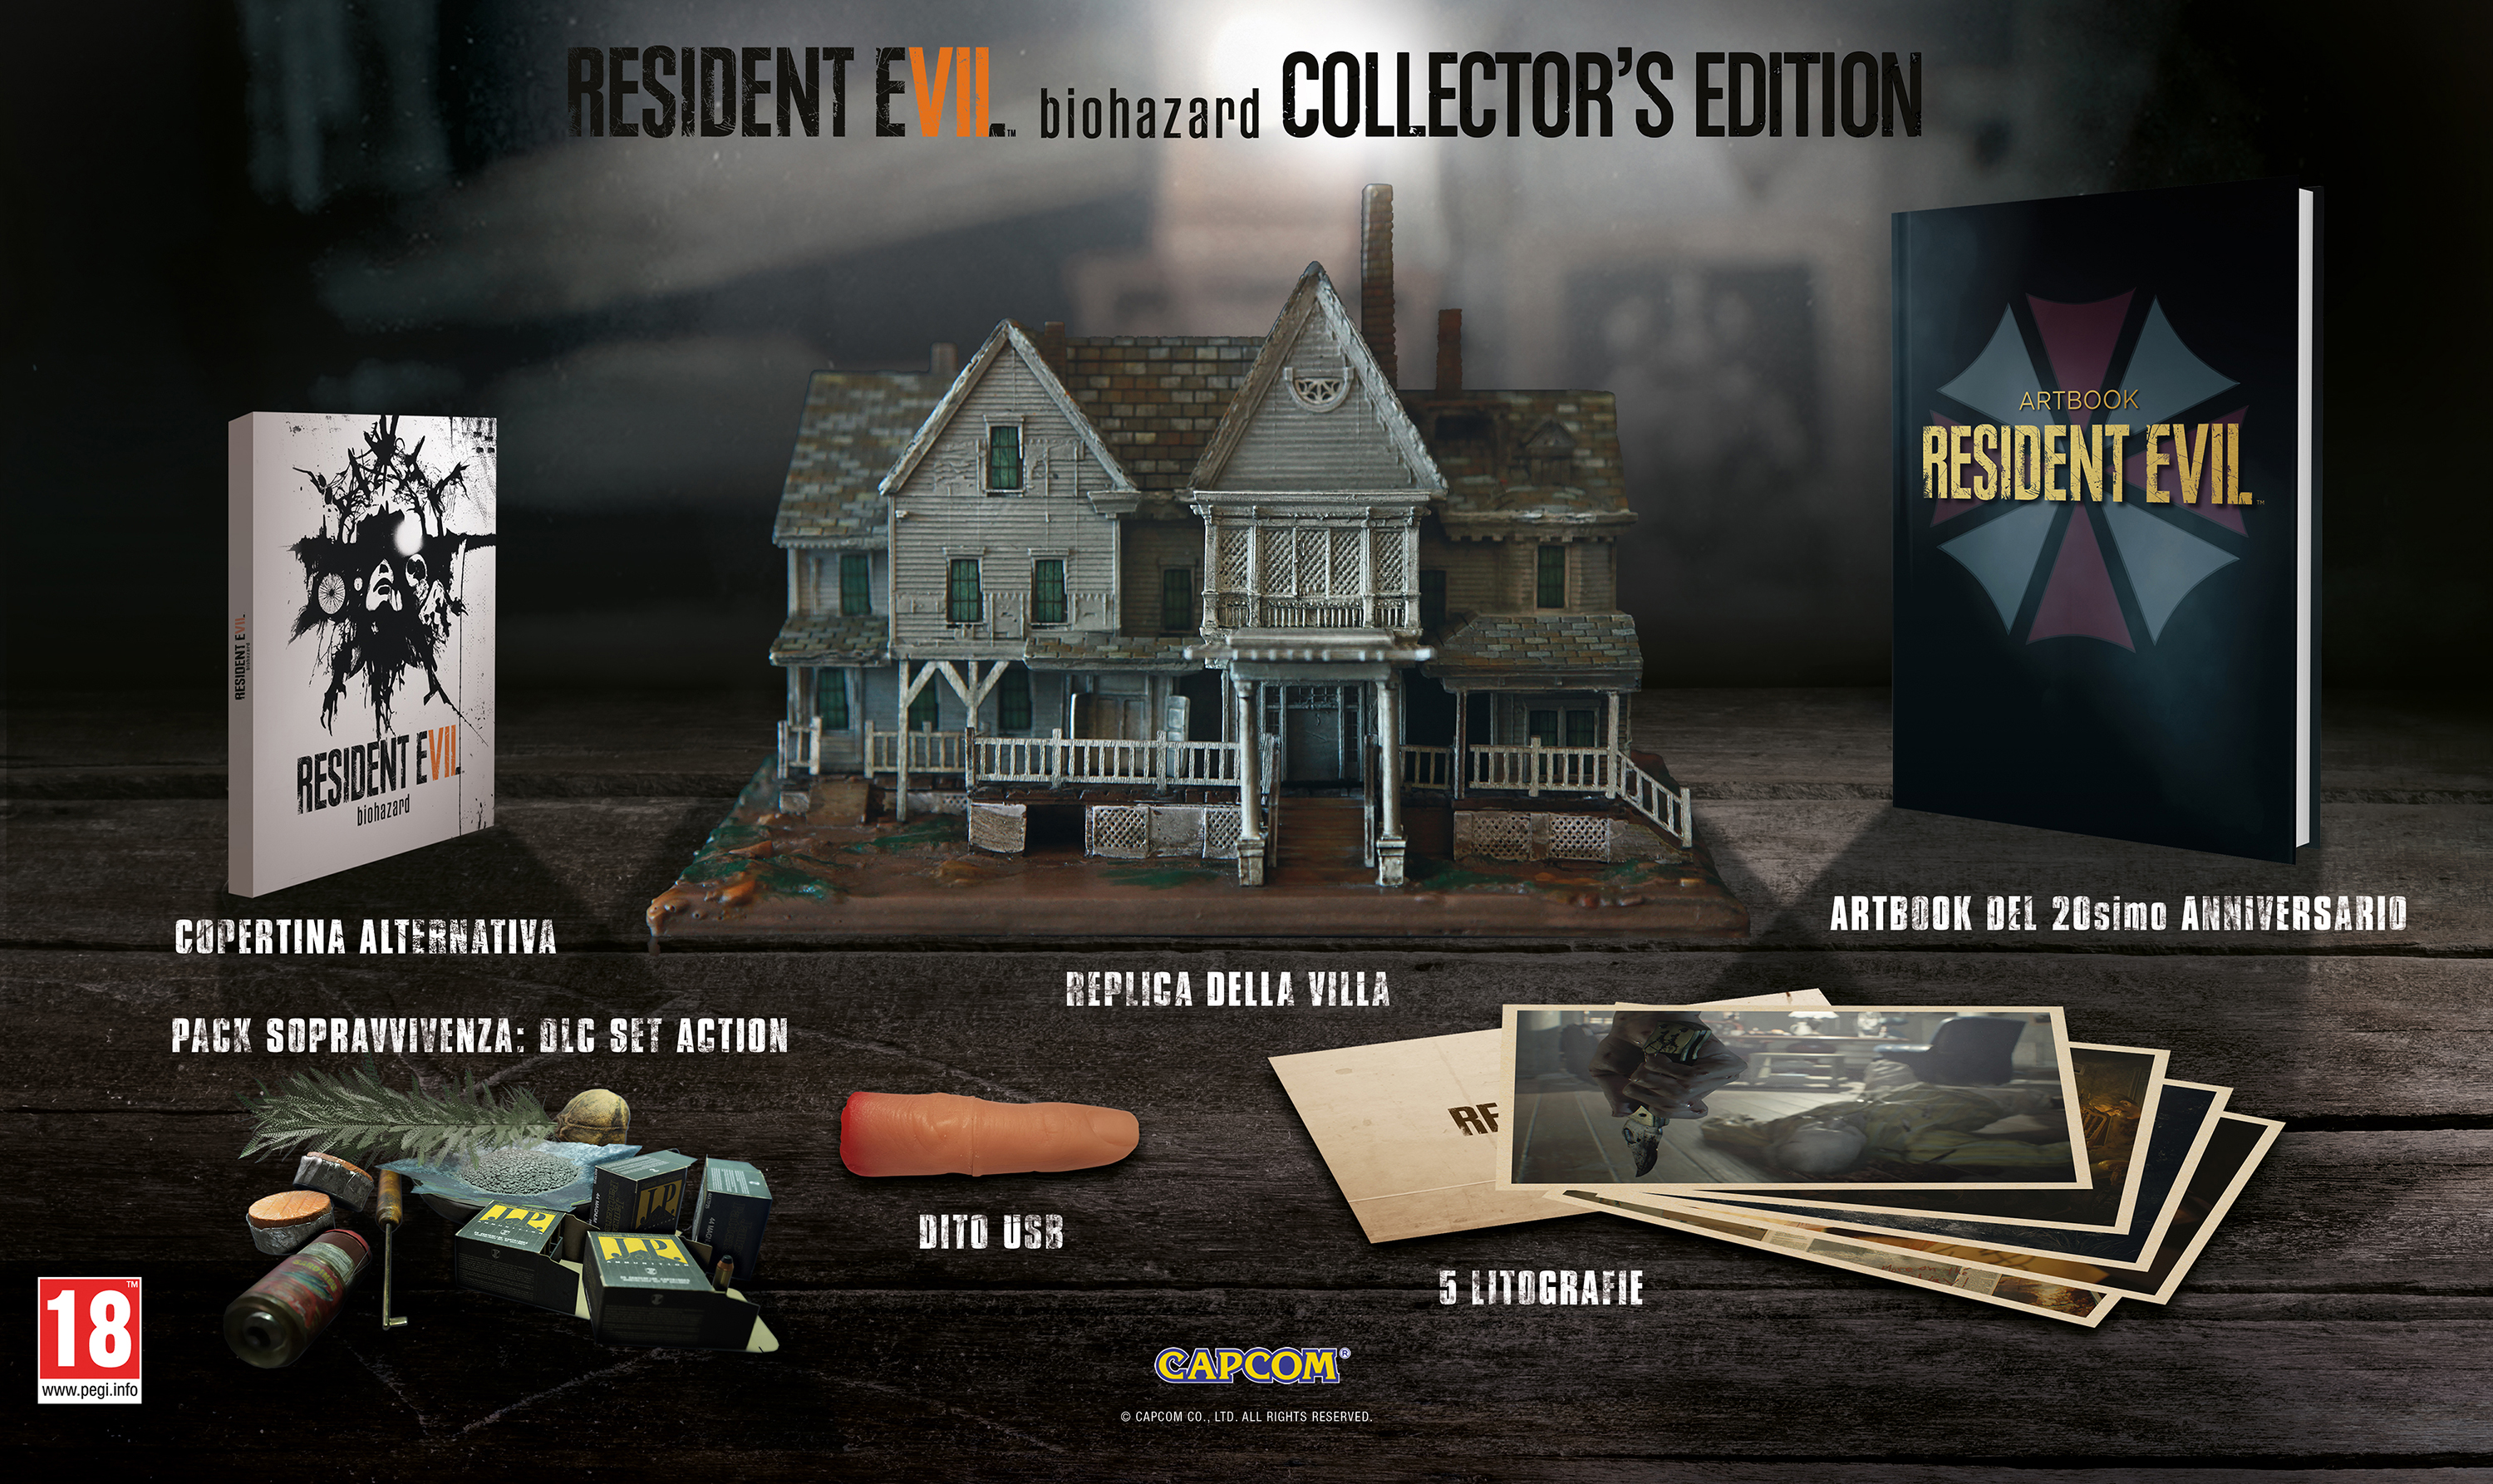 Resident Evil 7 What Is There And What Is Not There In The Collector S Edition Let S Talk About Video Games